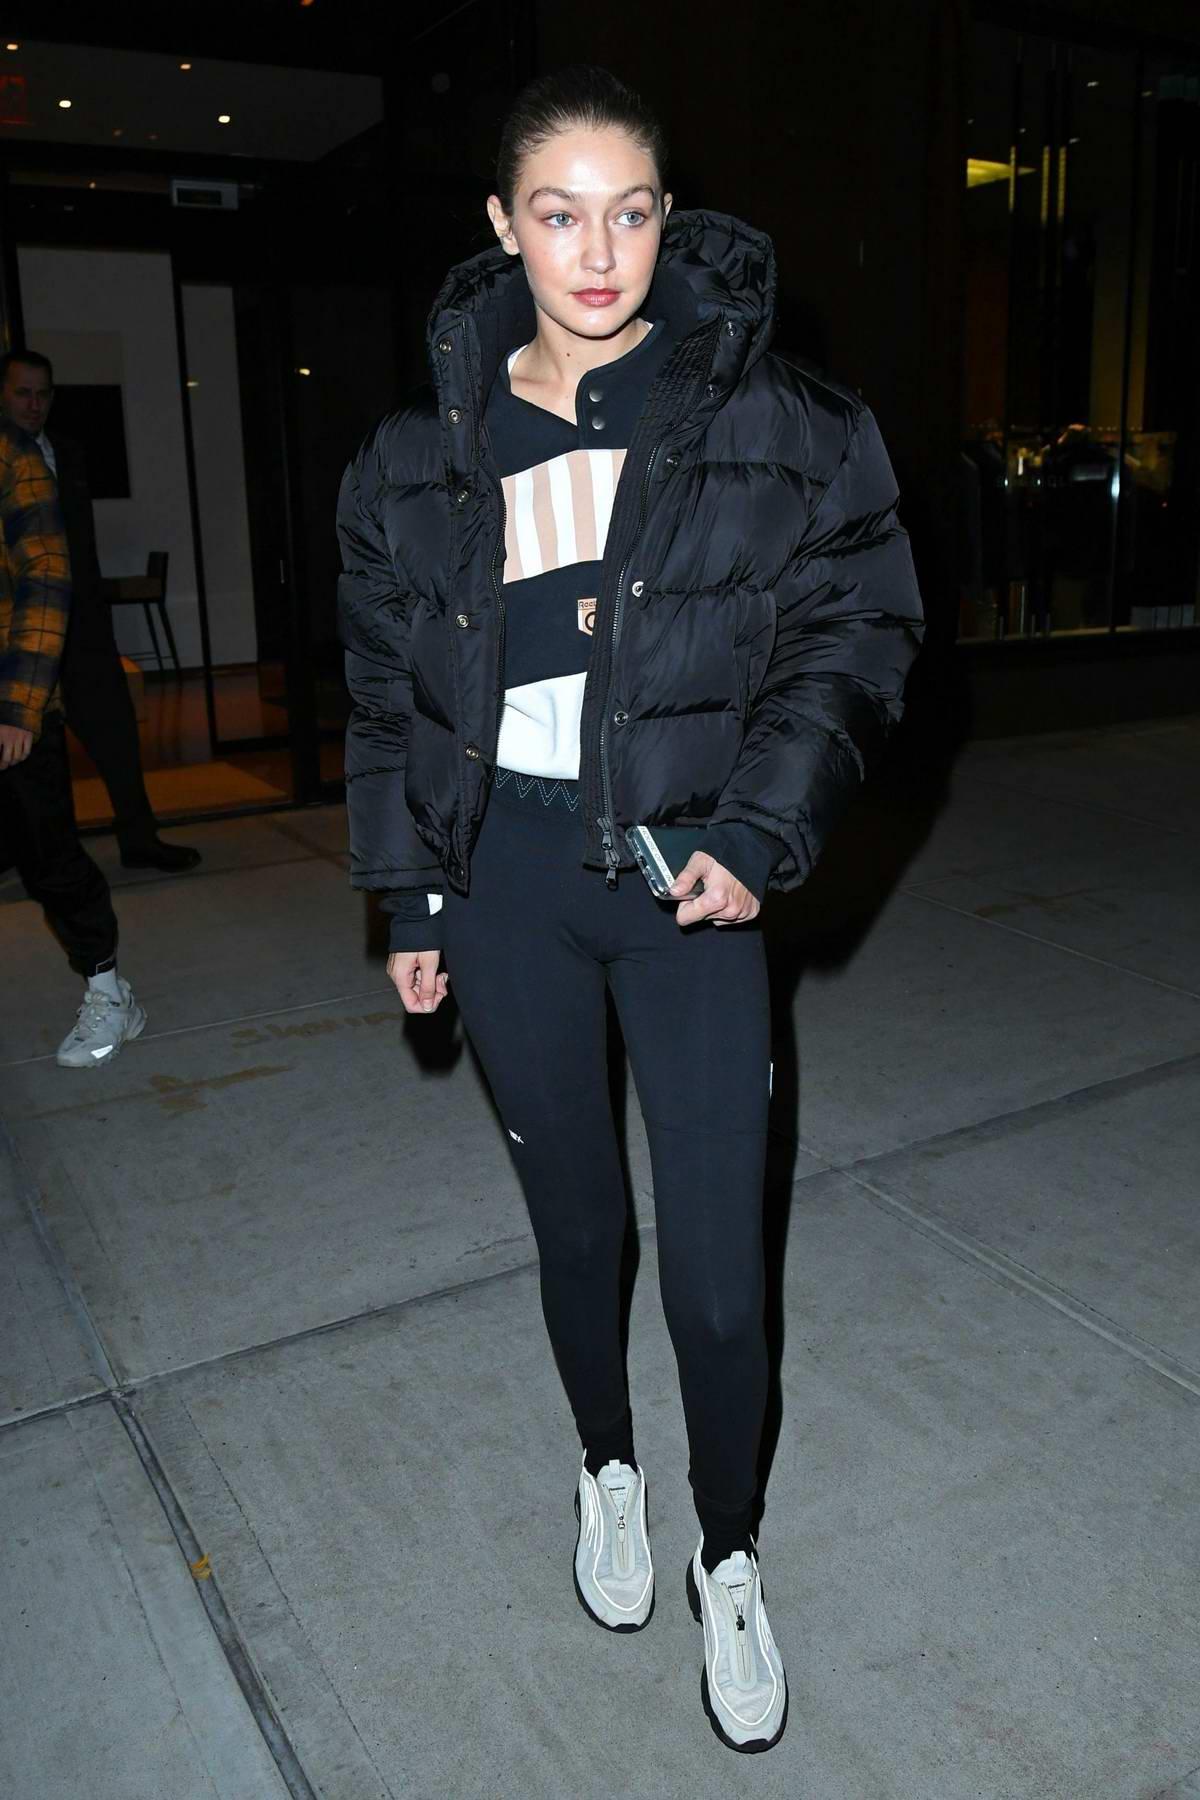 Gigi Hadid sports her new Reebok x Gigi Hadid Capsule Collection while heading out for dinner with friends in New York City